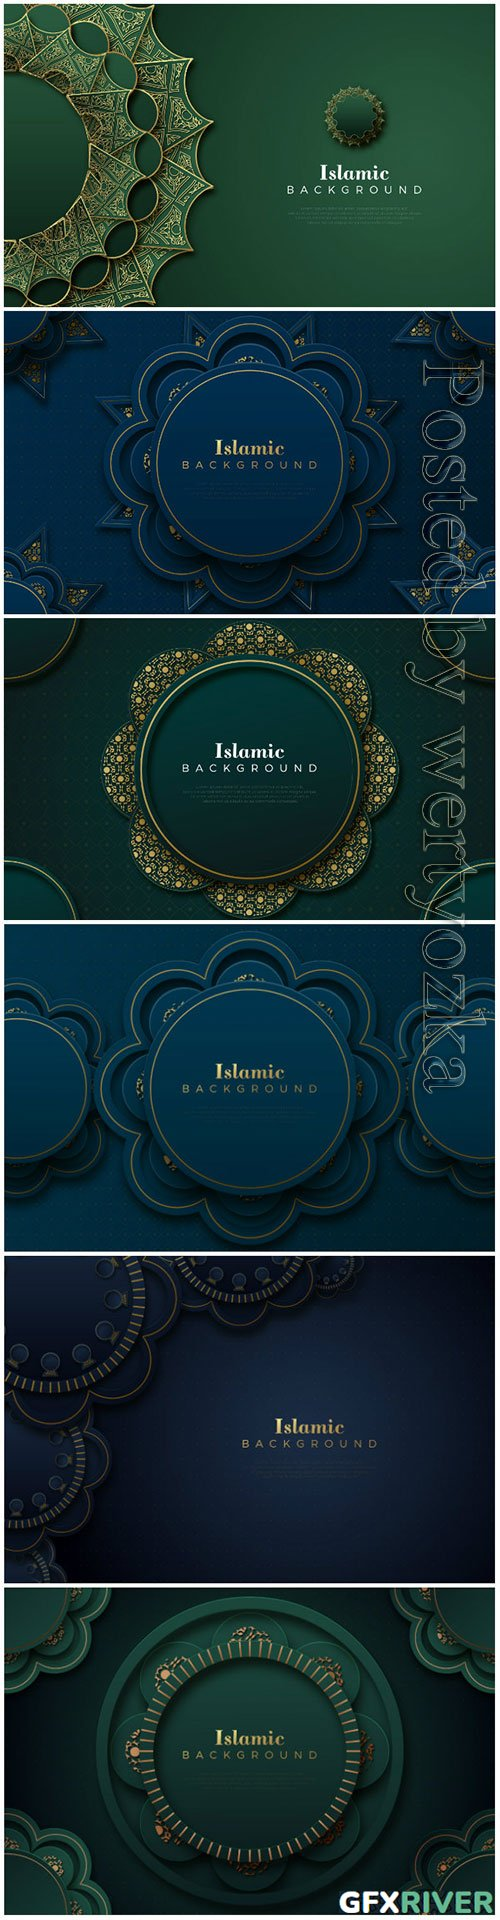 Islamic vector background with classic ornaments